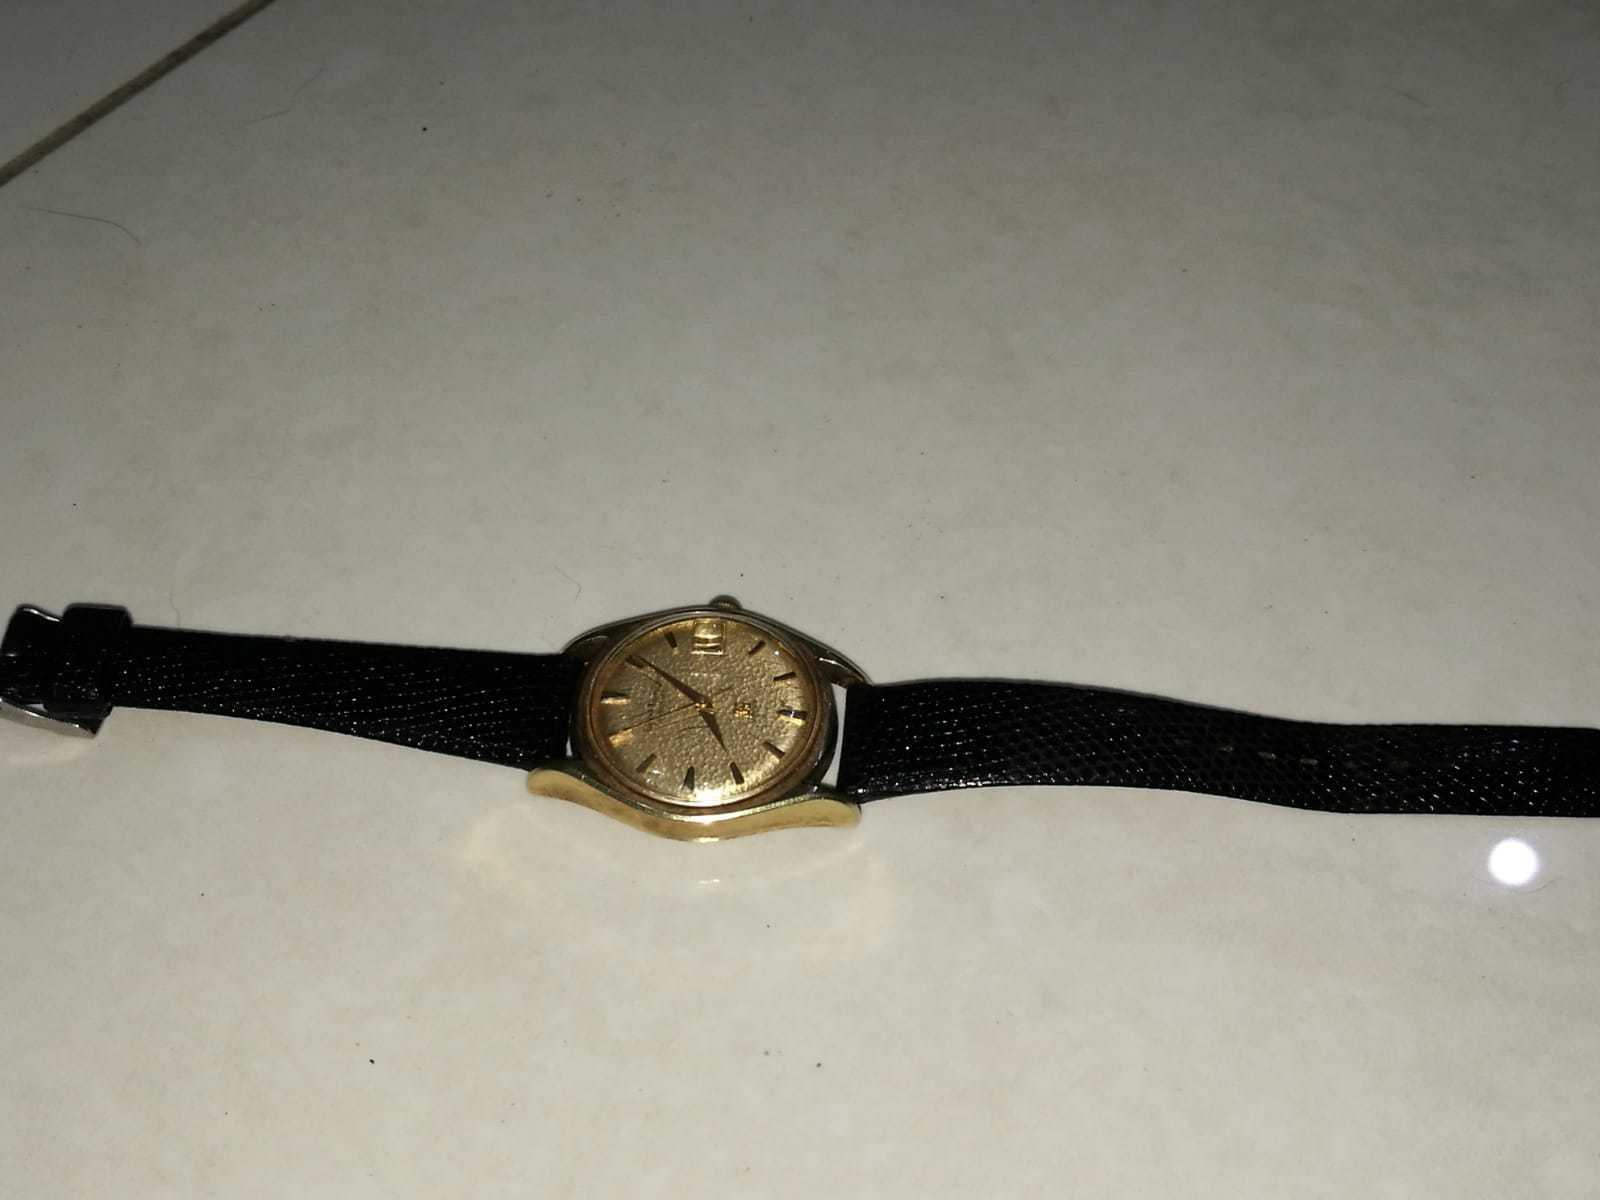 Vintage Girard-Perregaux Watch 39 Jewels Fine Leather Gyromatic gold Plated 18K